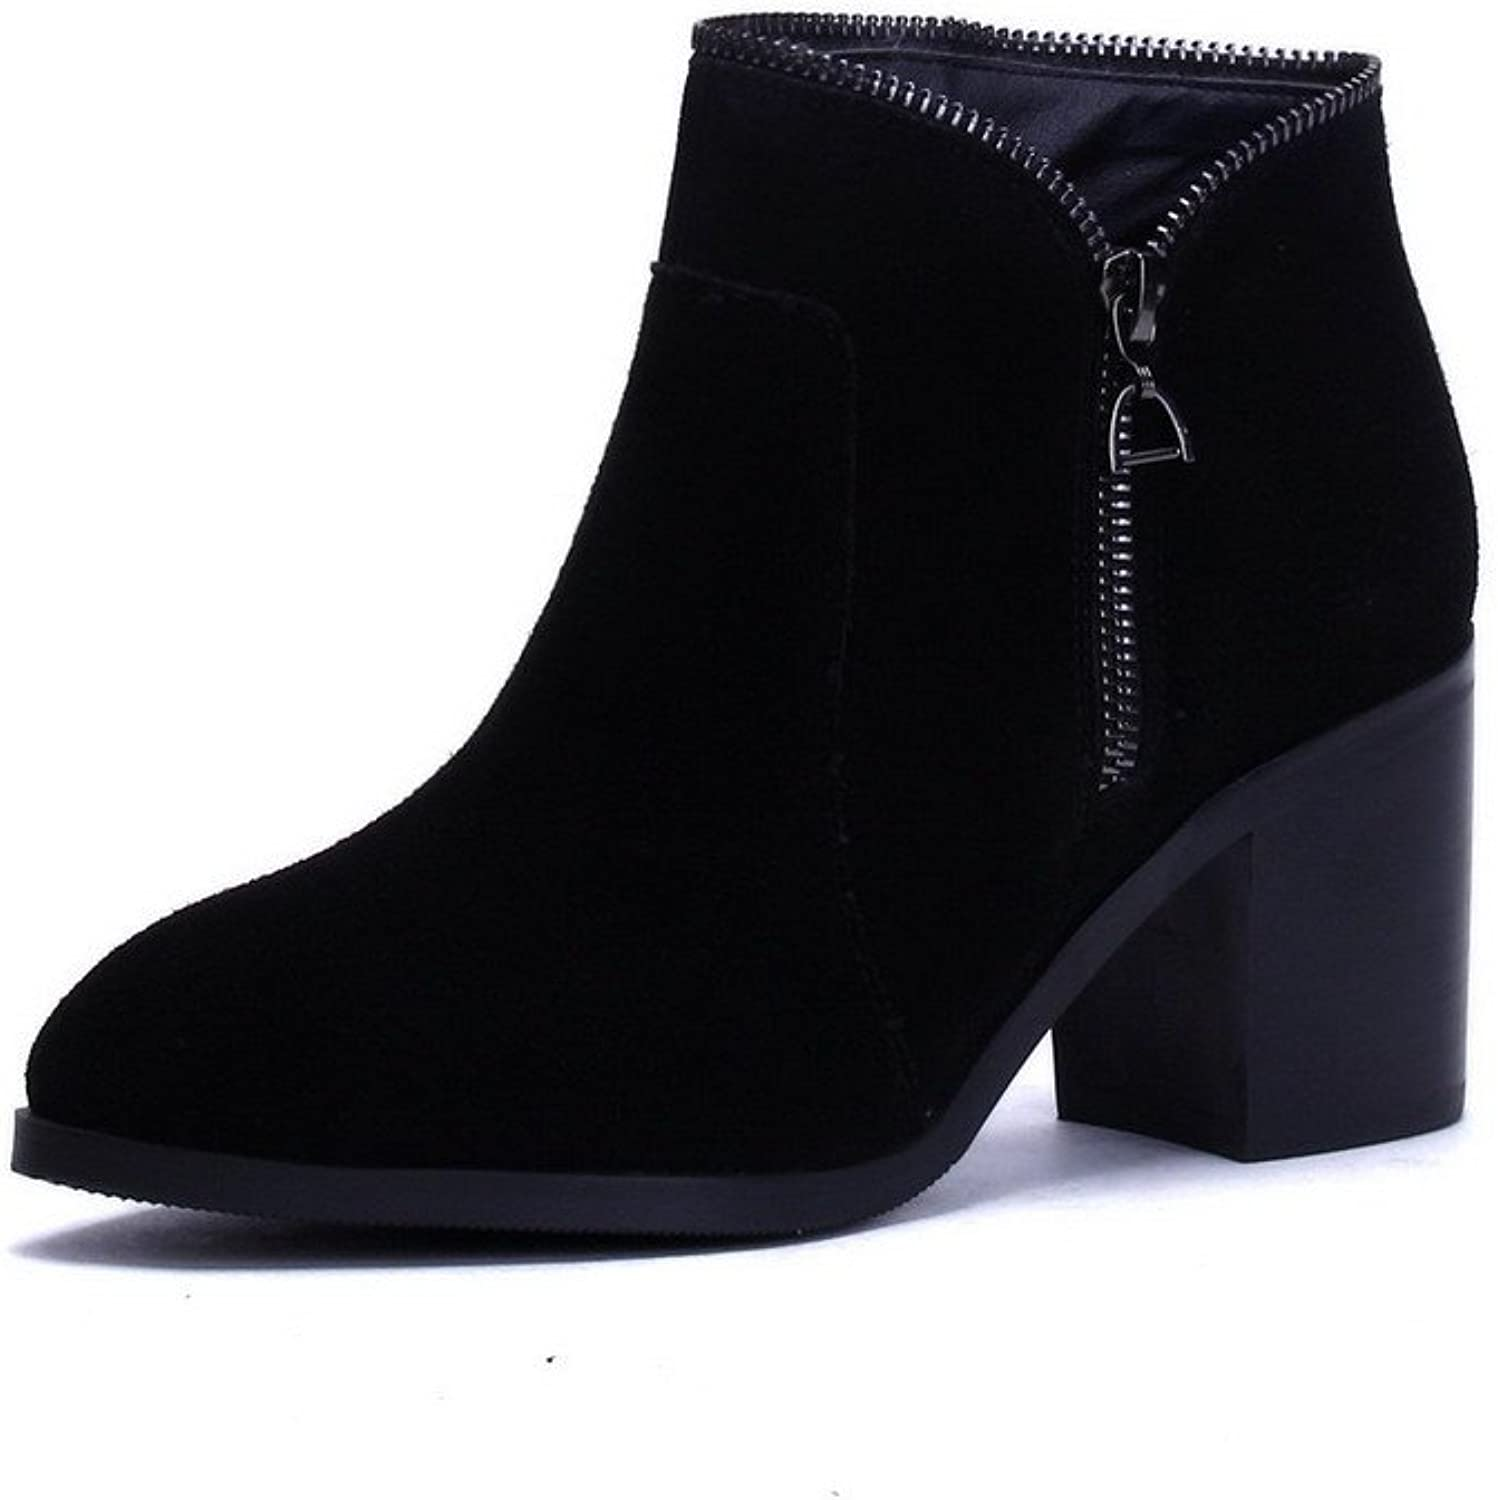 AmoonyFashion Women's Round-Toe Closed-Toe Kitten-Heels Boots with Slipping Sole and Chunky Heels